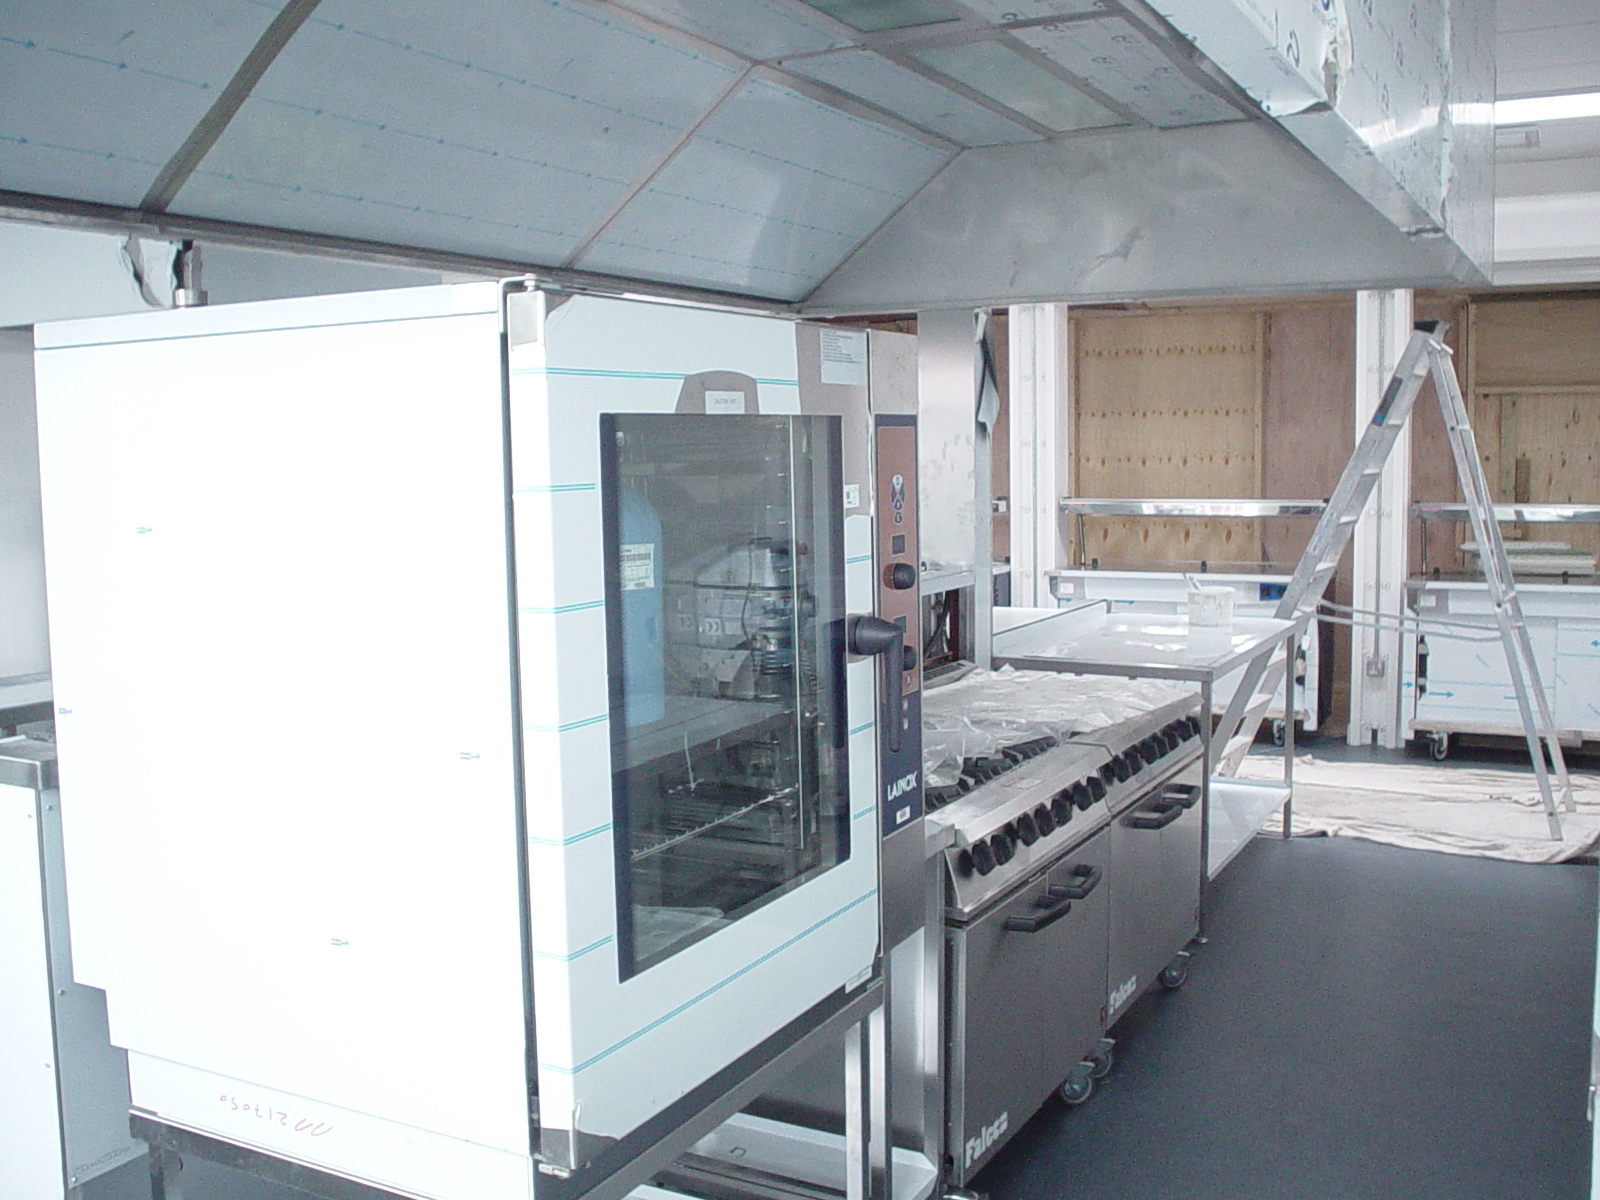 Full kitchen installation in progress for Worcester Council at Northwick Primary School.